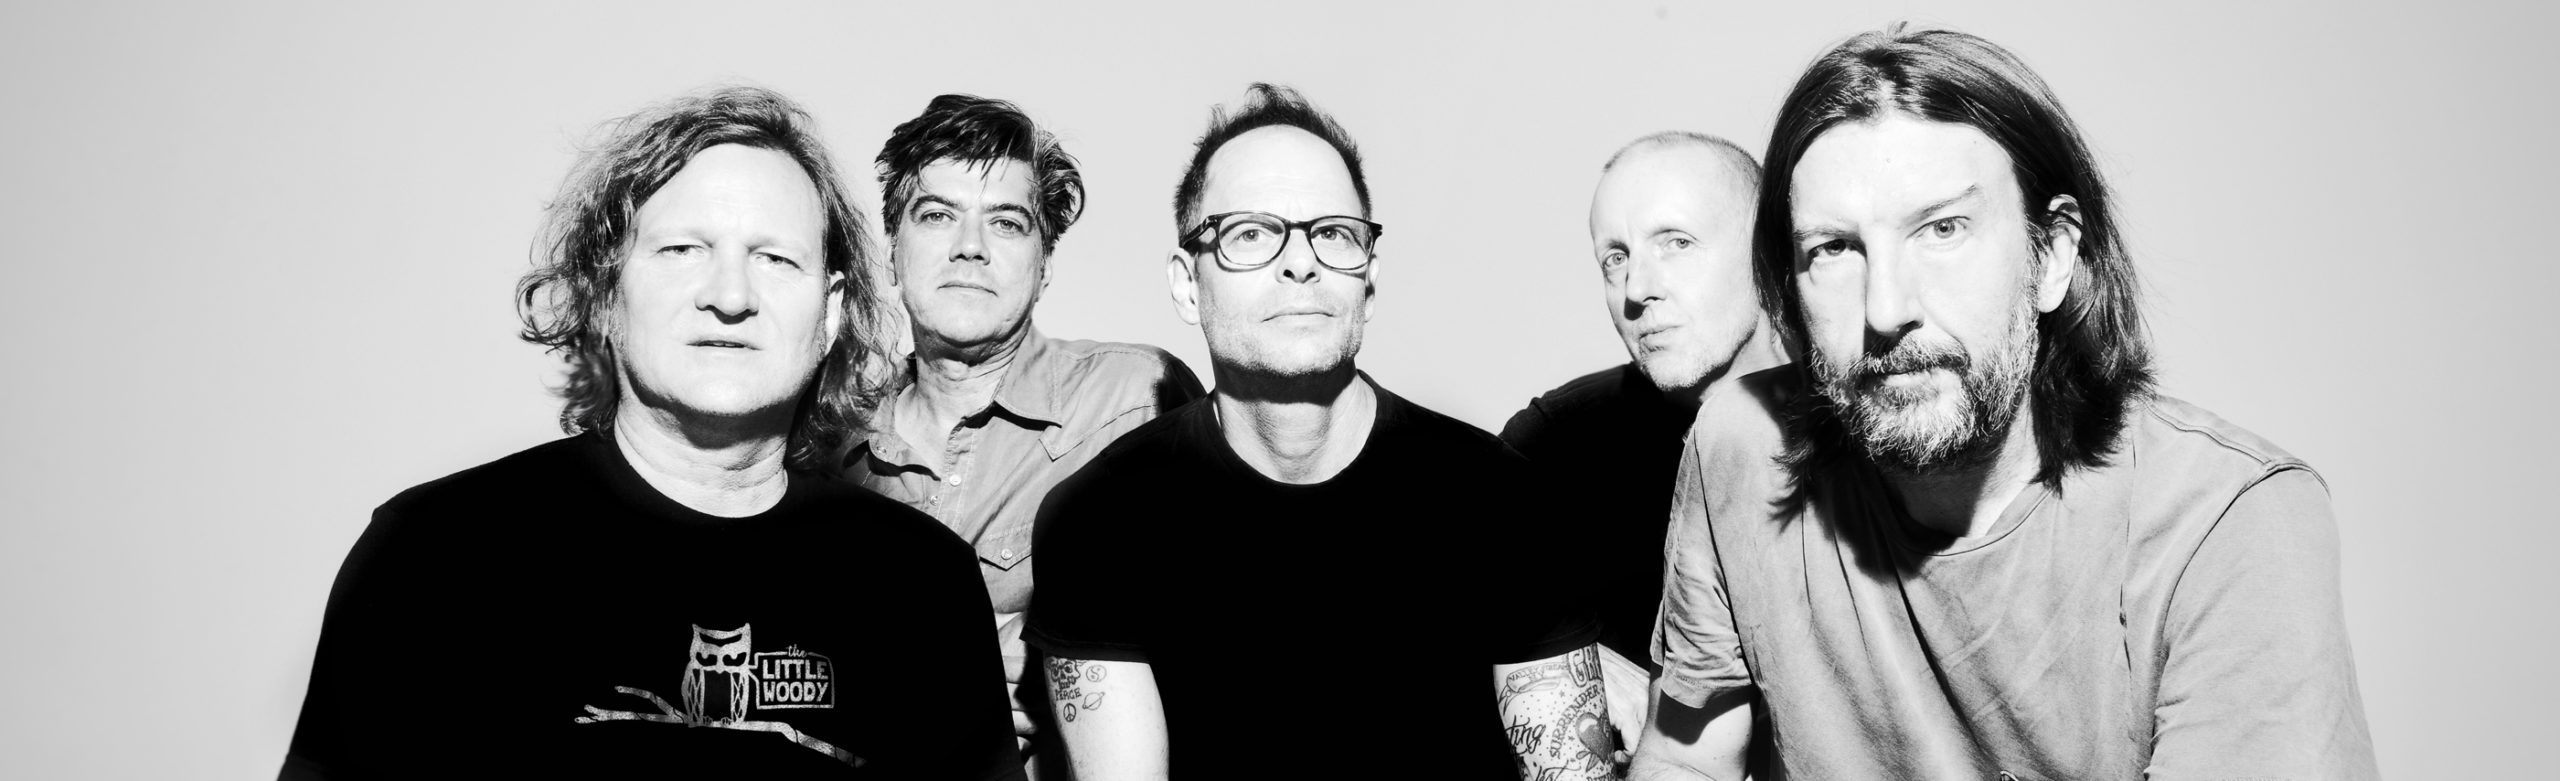 Grammy Nominated Alt Rockers Gin Blossoms to Perform New Miserable Experience Live in Missoula Image